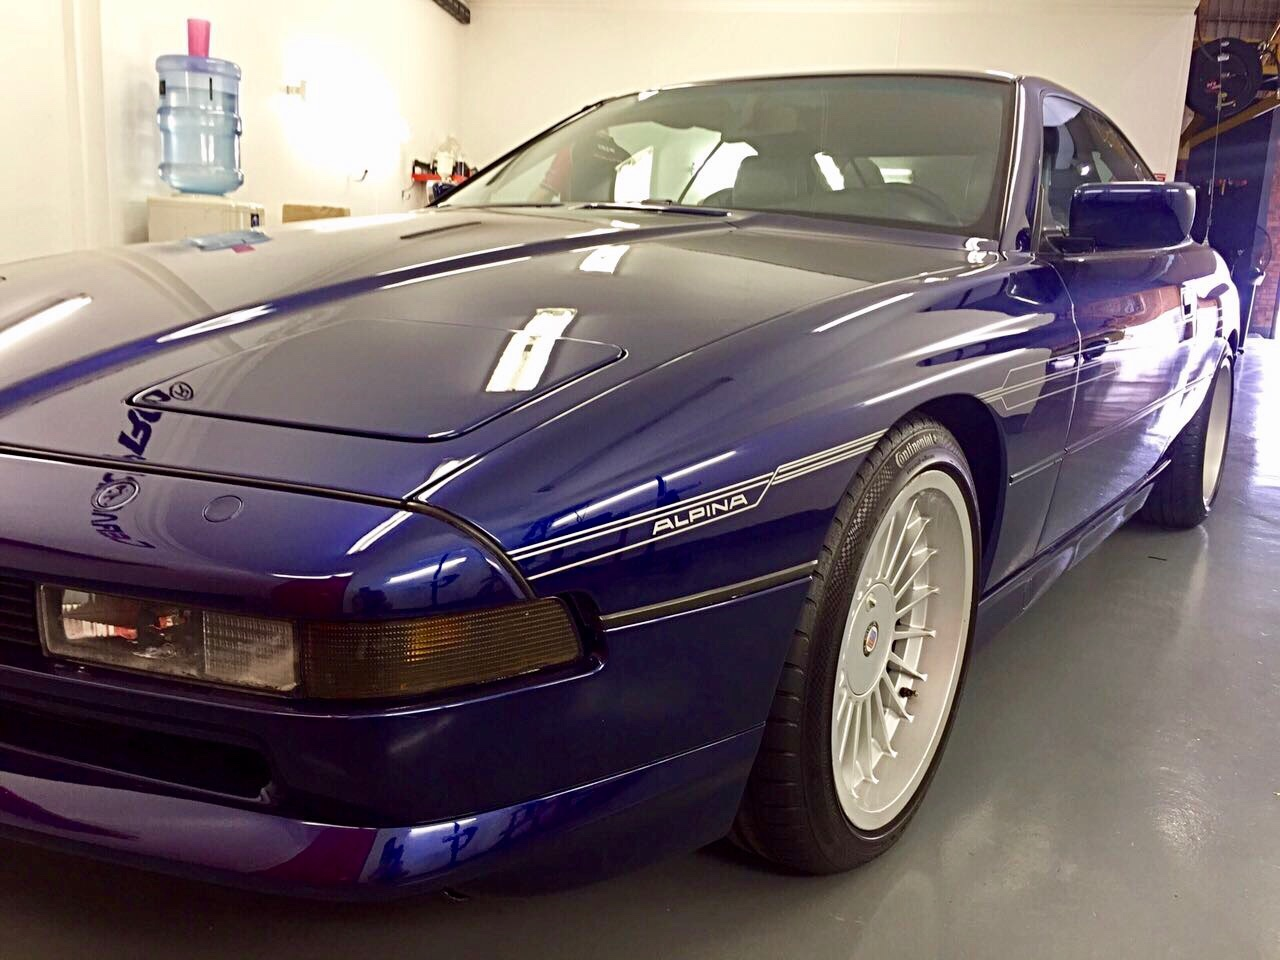 E31 Alpina For Sale: E31 BMW 850i B12 Alpina 5.0 Up For Sale In South Africa